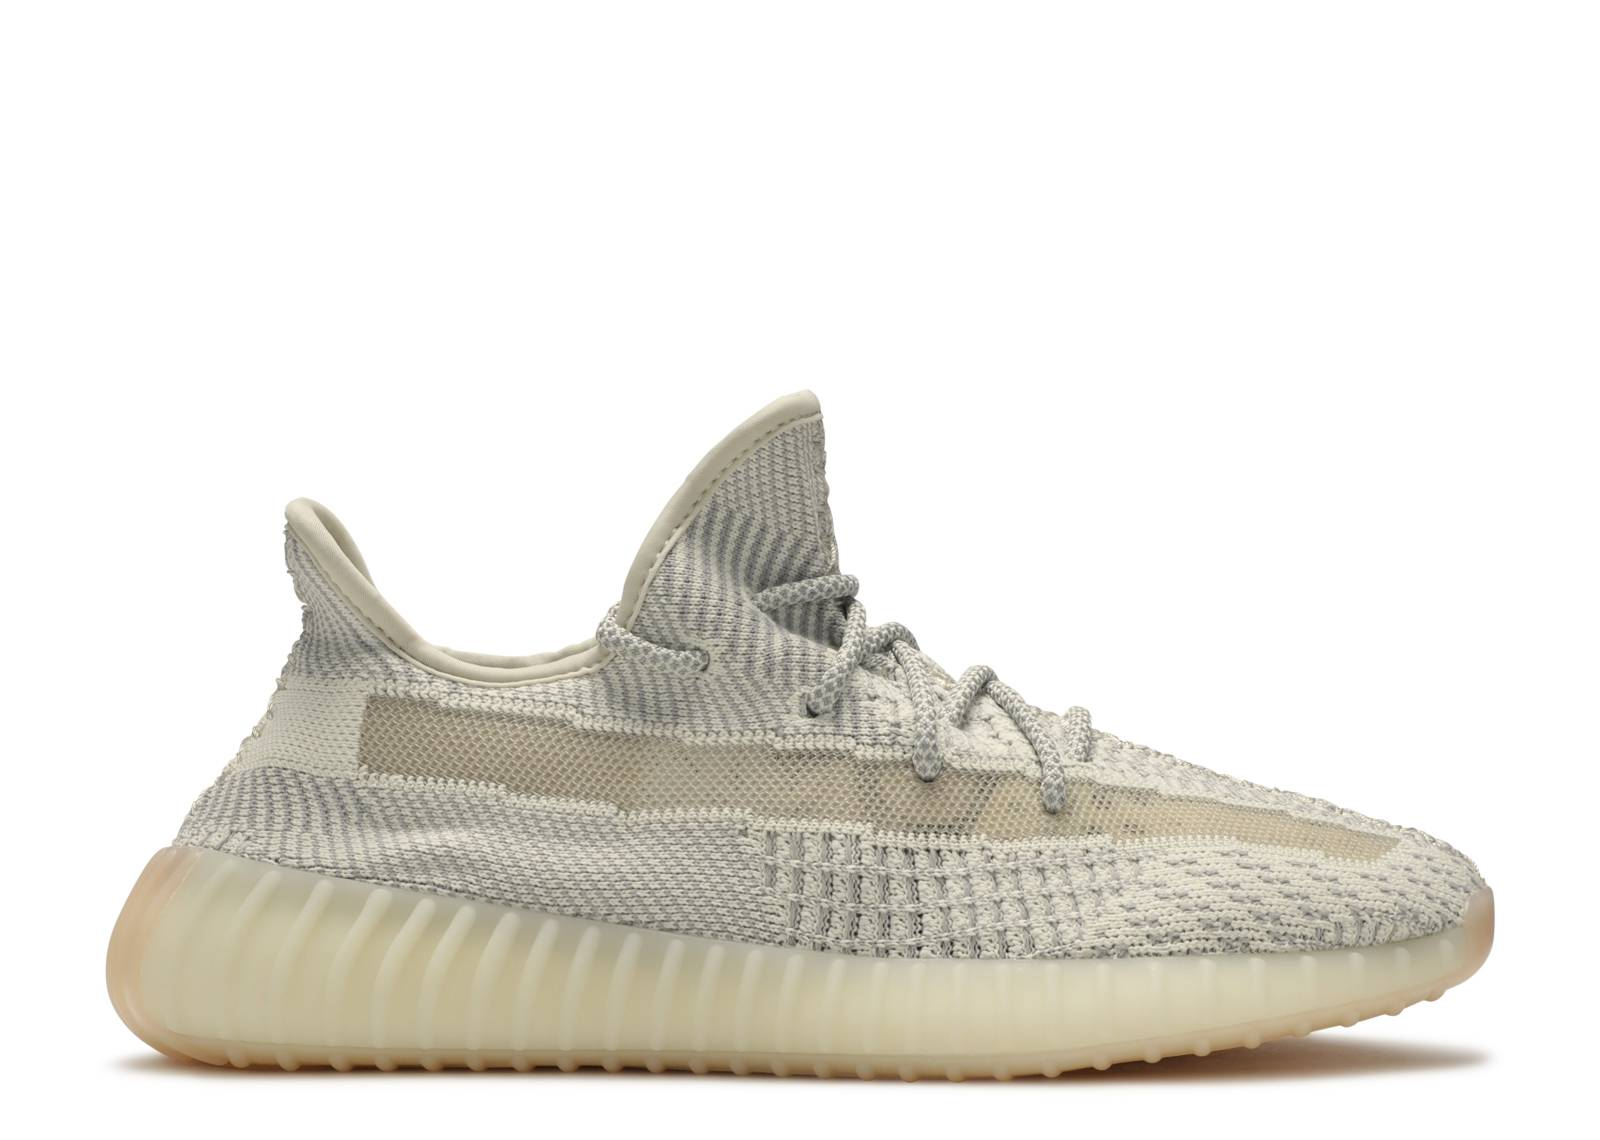 best website 3e4da 9d8e9 Adidas Yeezy Shoes for Men, Women & Infants | Flight Club